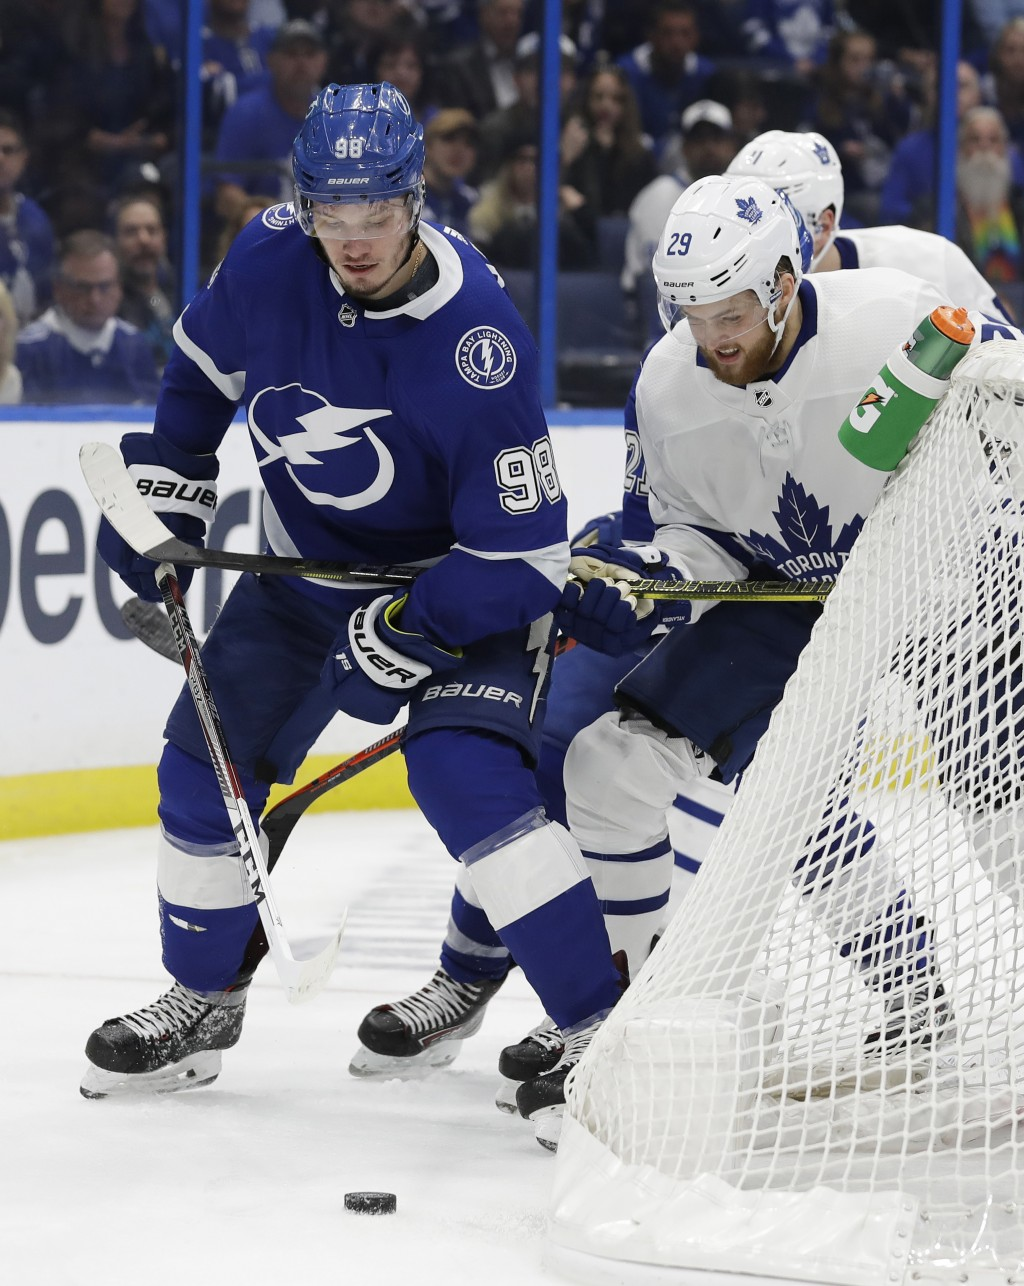 Tampa Bay Lightning defenseman Mikhail Sergachev (98) battles with Toronto Maple Leafs right wing William Nylander (29) for a loose puck behind the ne